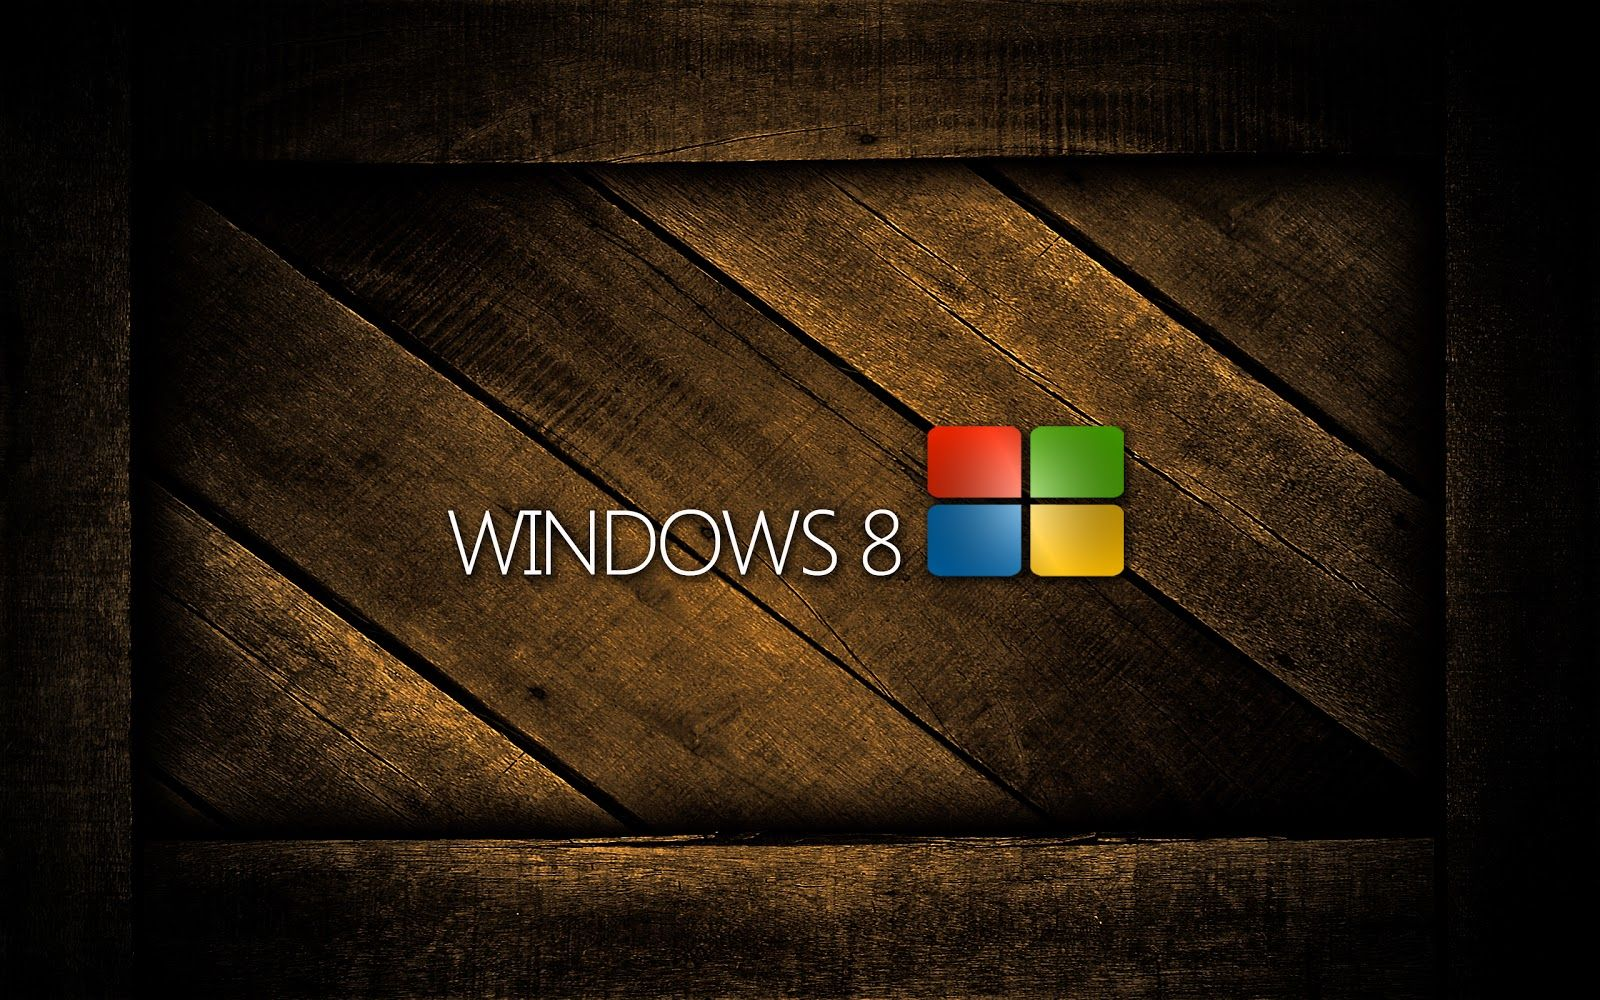 latest windows 8 hd wallpapers download - pc games free full | free